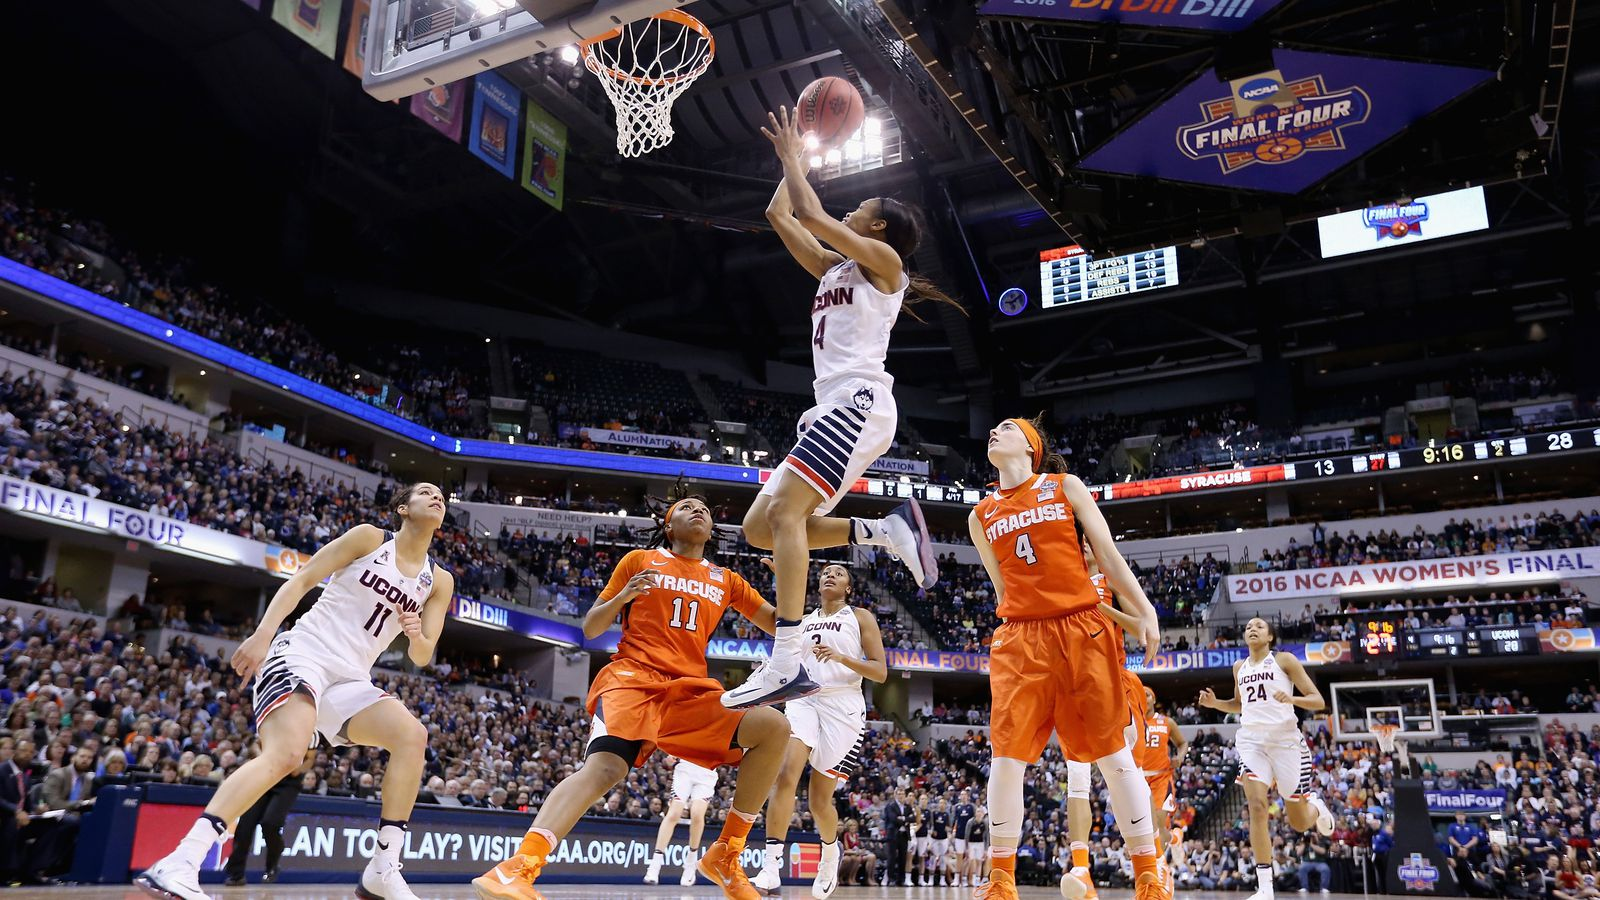 syracuse vs uconn mens basketball - photo#44